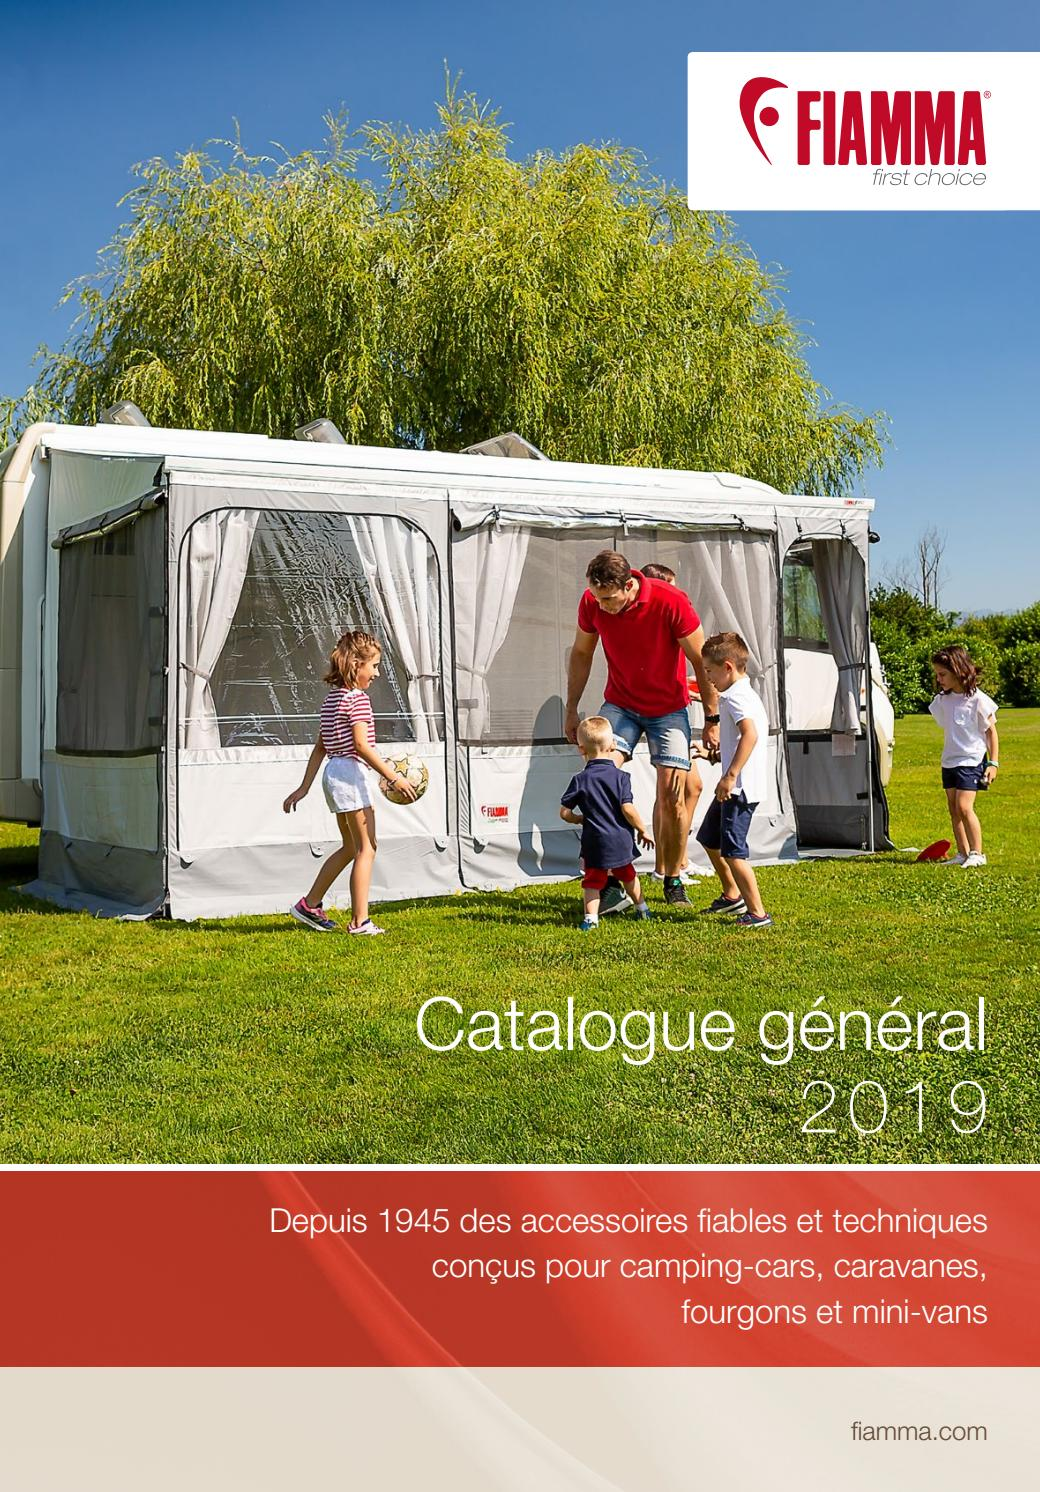 Auvent Porte Arriere Trafic Catalogue General Fiamma 2019 Fr By Makemedia Studios S A S Issuu